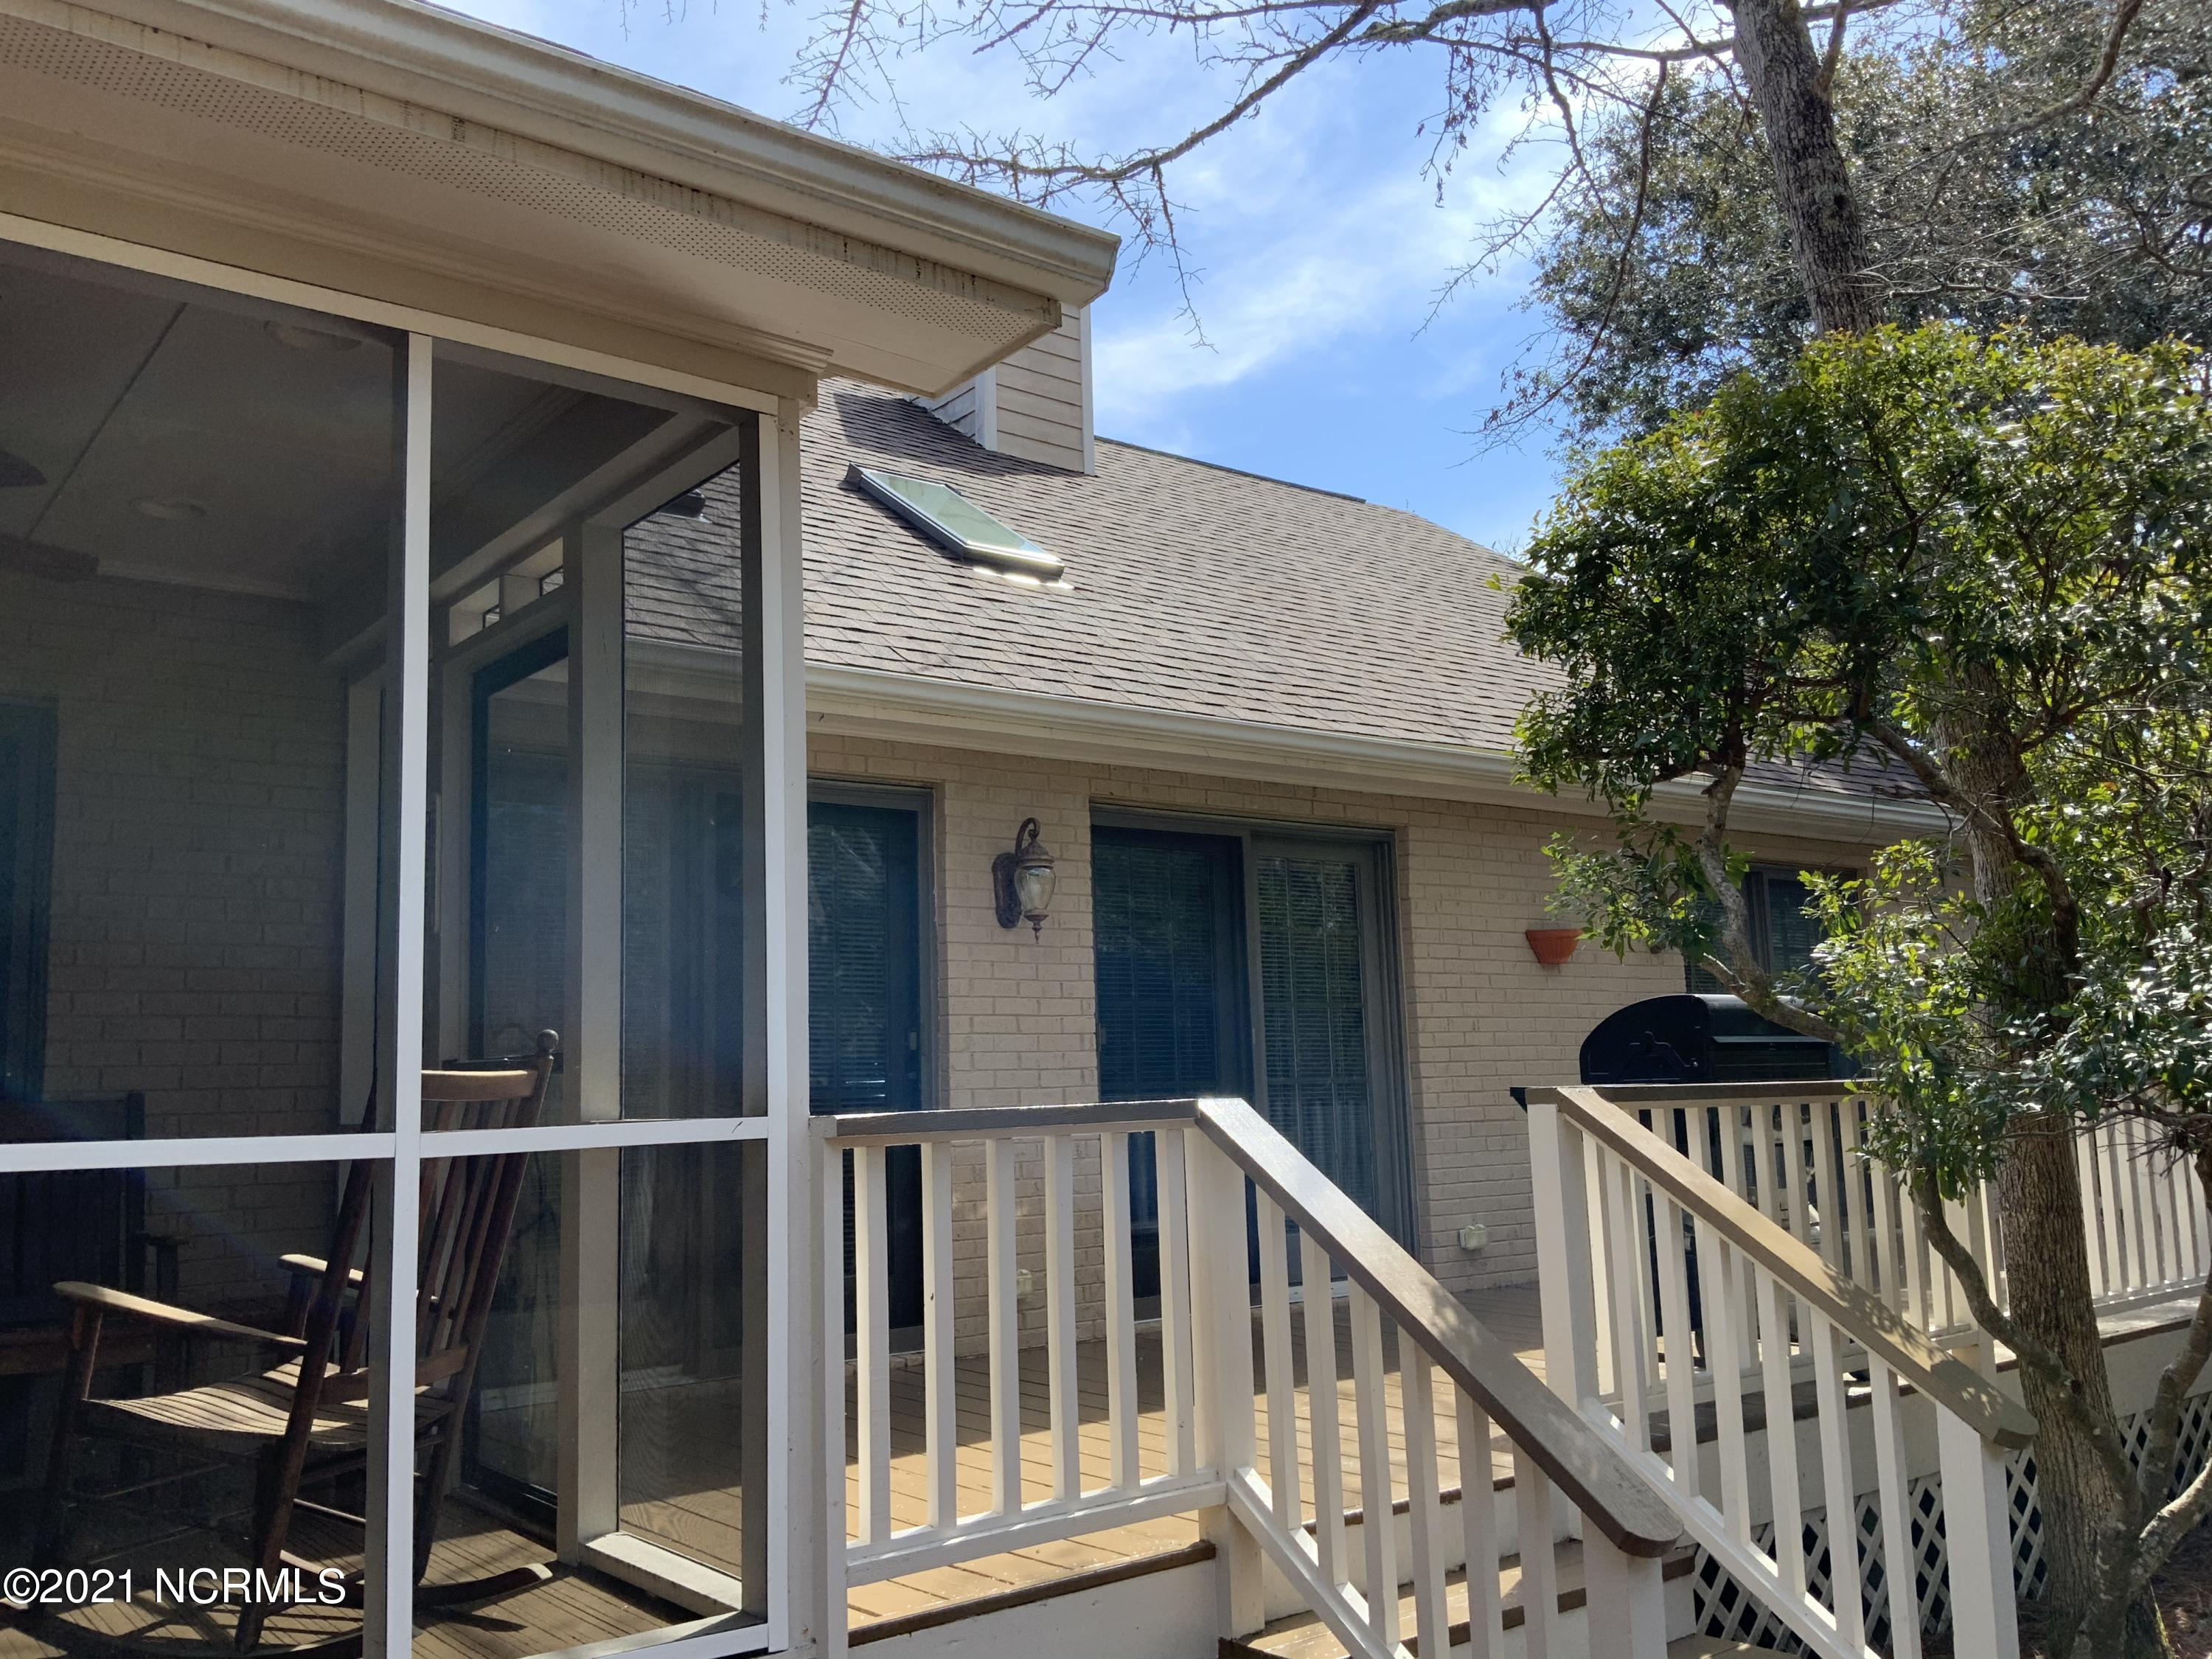 502 Periwinkle Way, Caswell Beach, North Carolina 28465, 4 Bedrooms Bedrooms, 7 Rooms Rooms,3 BathroomsBathrooms,Single family residence,For sale,Periwinkle,100257292